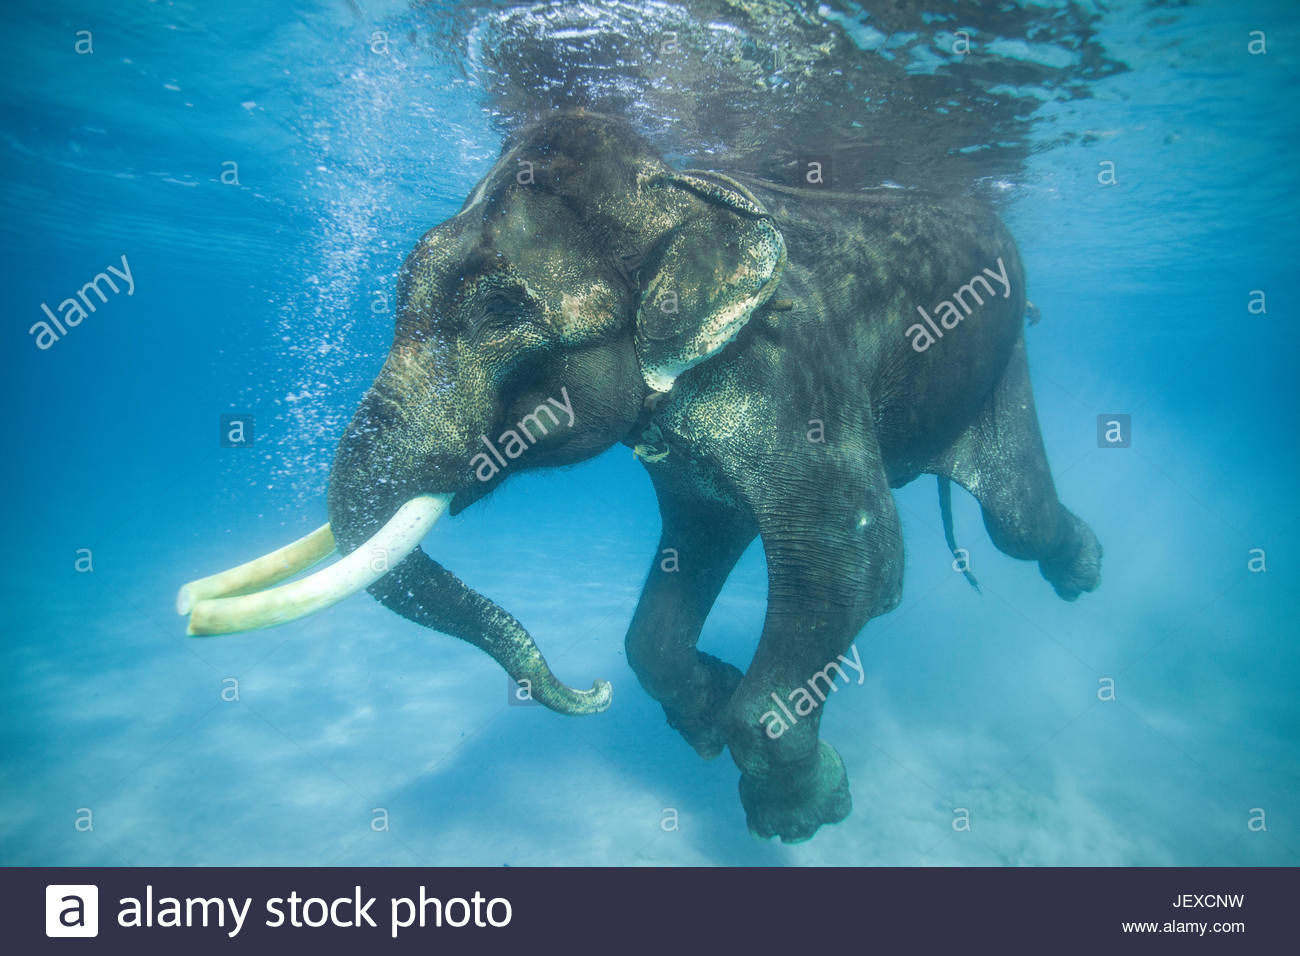 Rajan, the infamous Asian elephant, swims in the Indian Ocean. - Stock Image